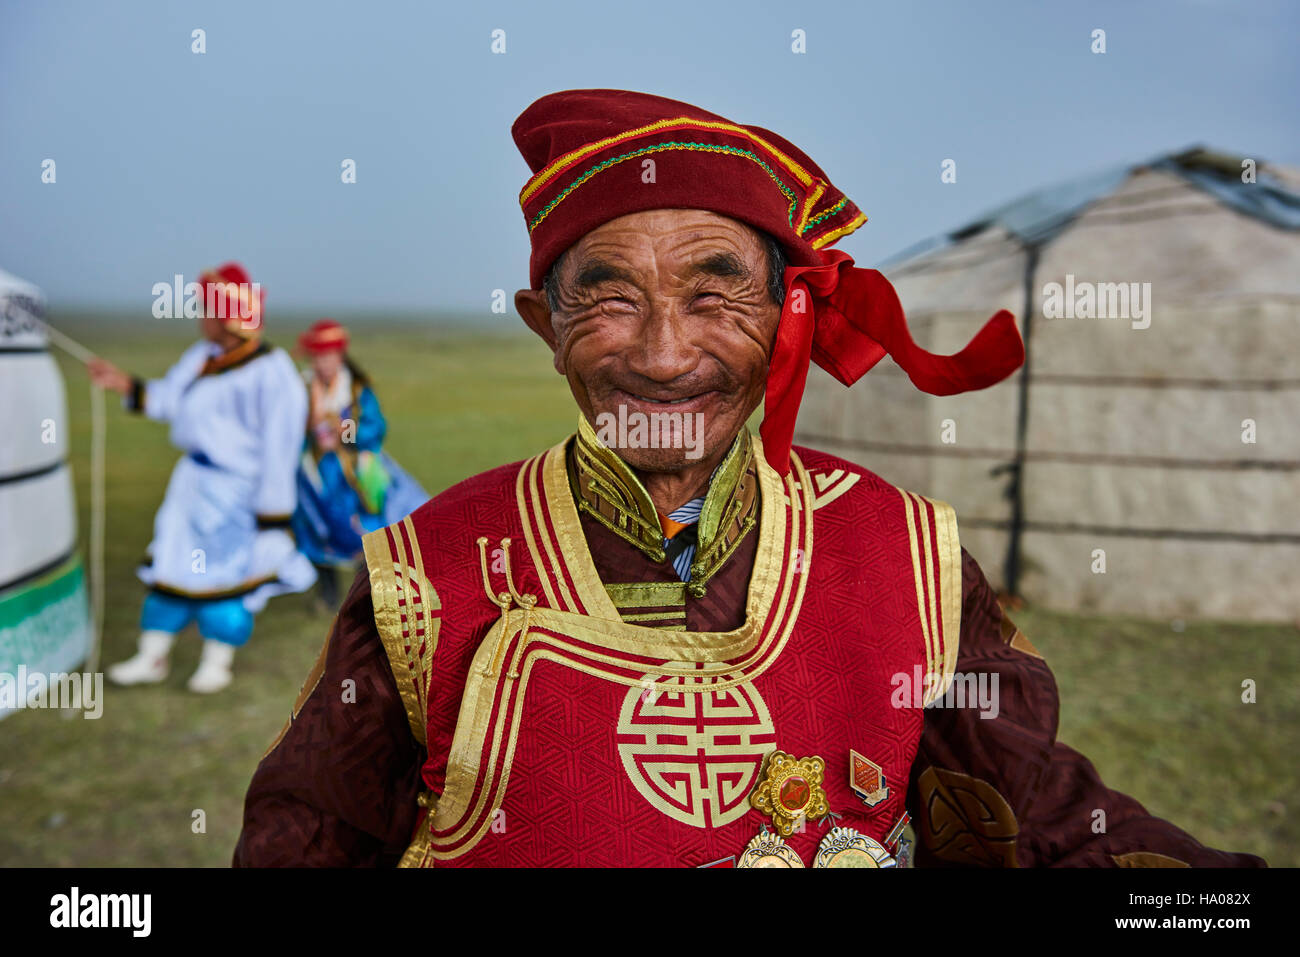 Mongolia, Uvs province, western Mongolia, nomad wedding in the steppe, portrait of an old man from Dorvod ethnic - Stock Image